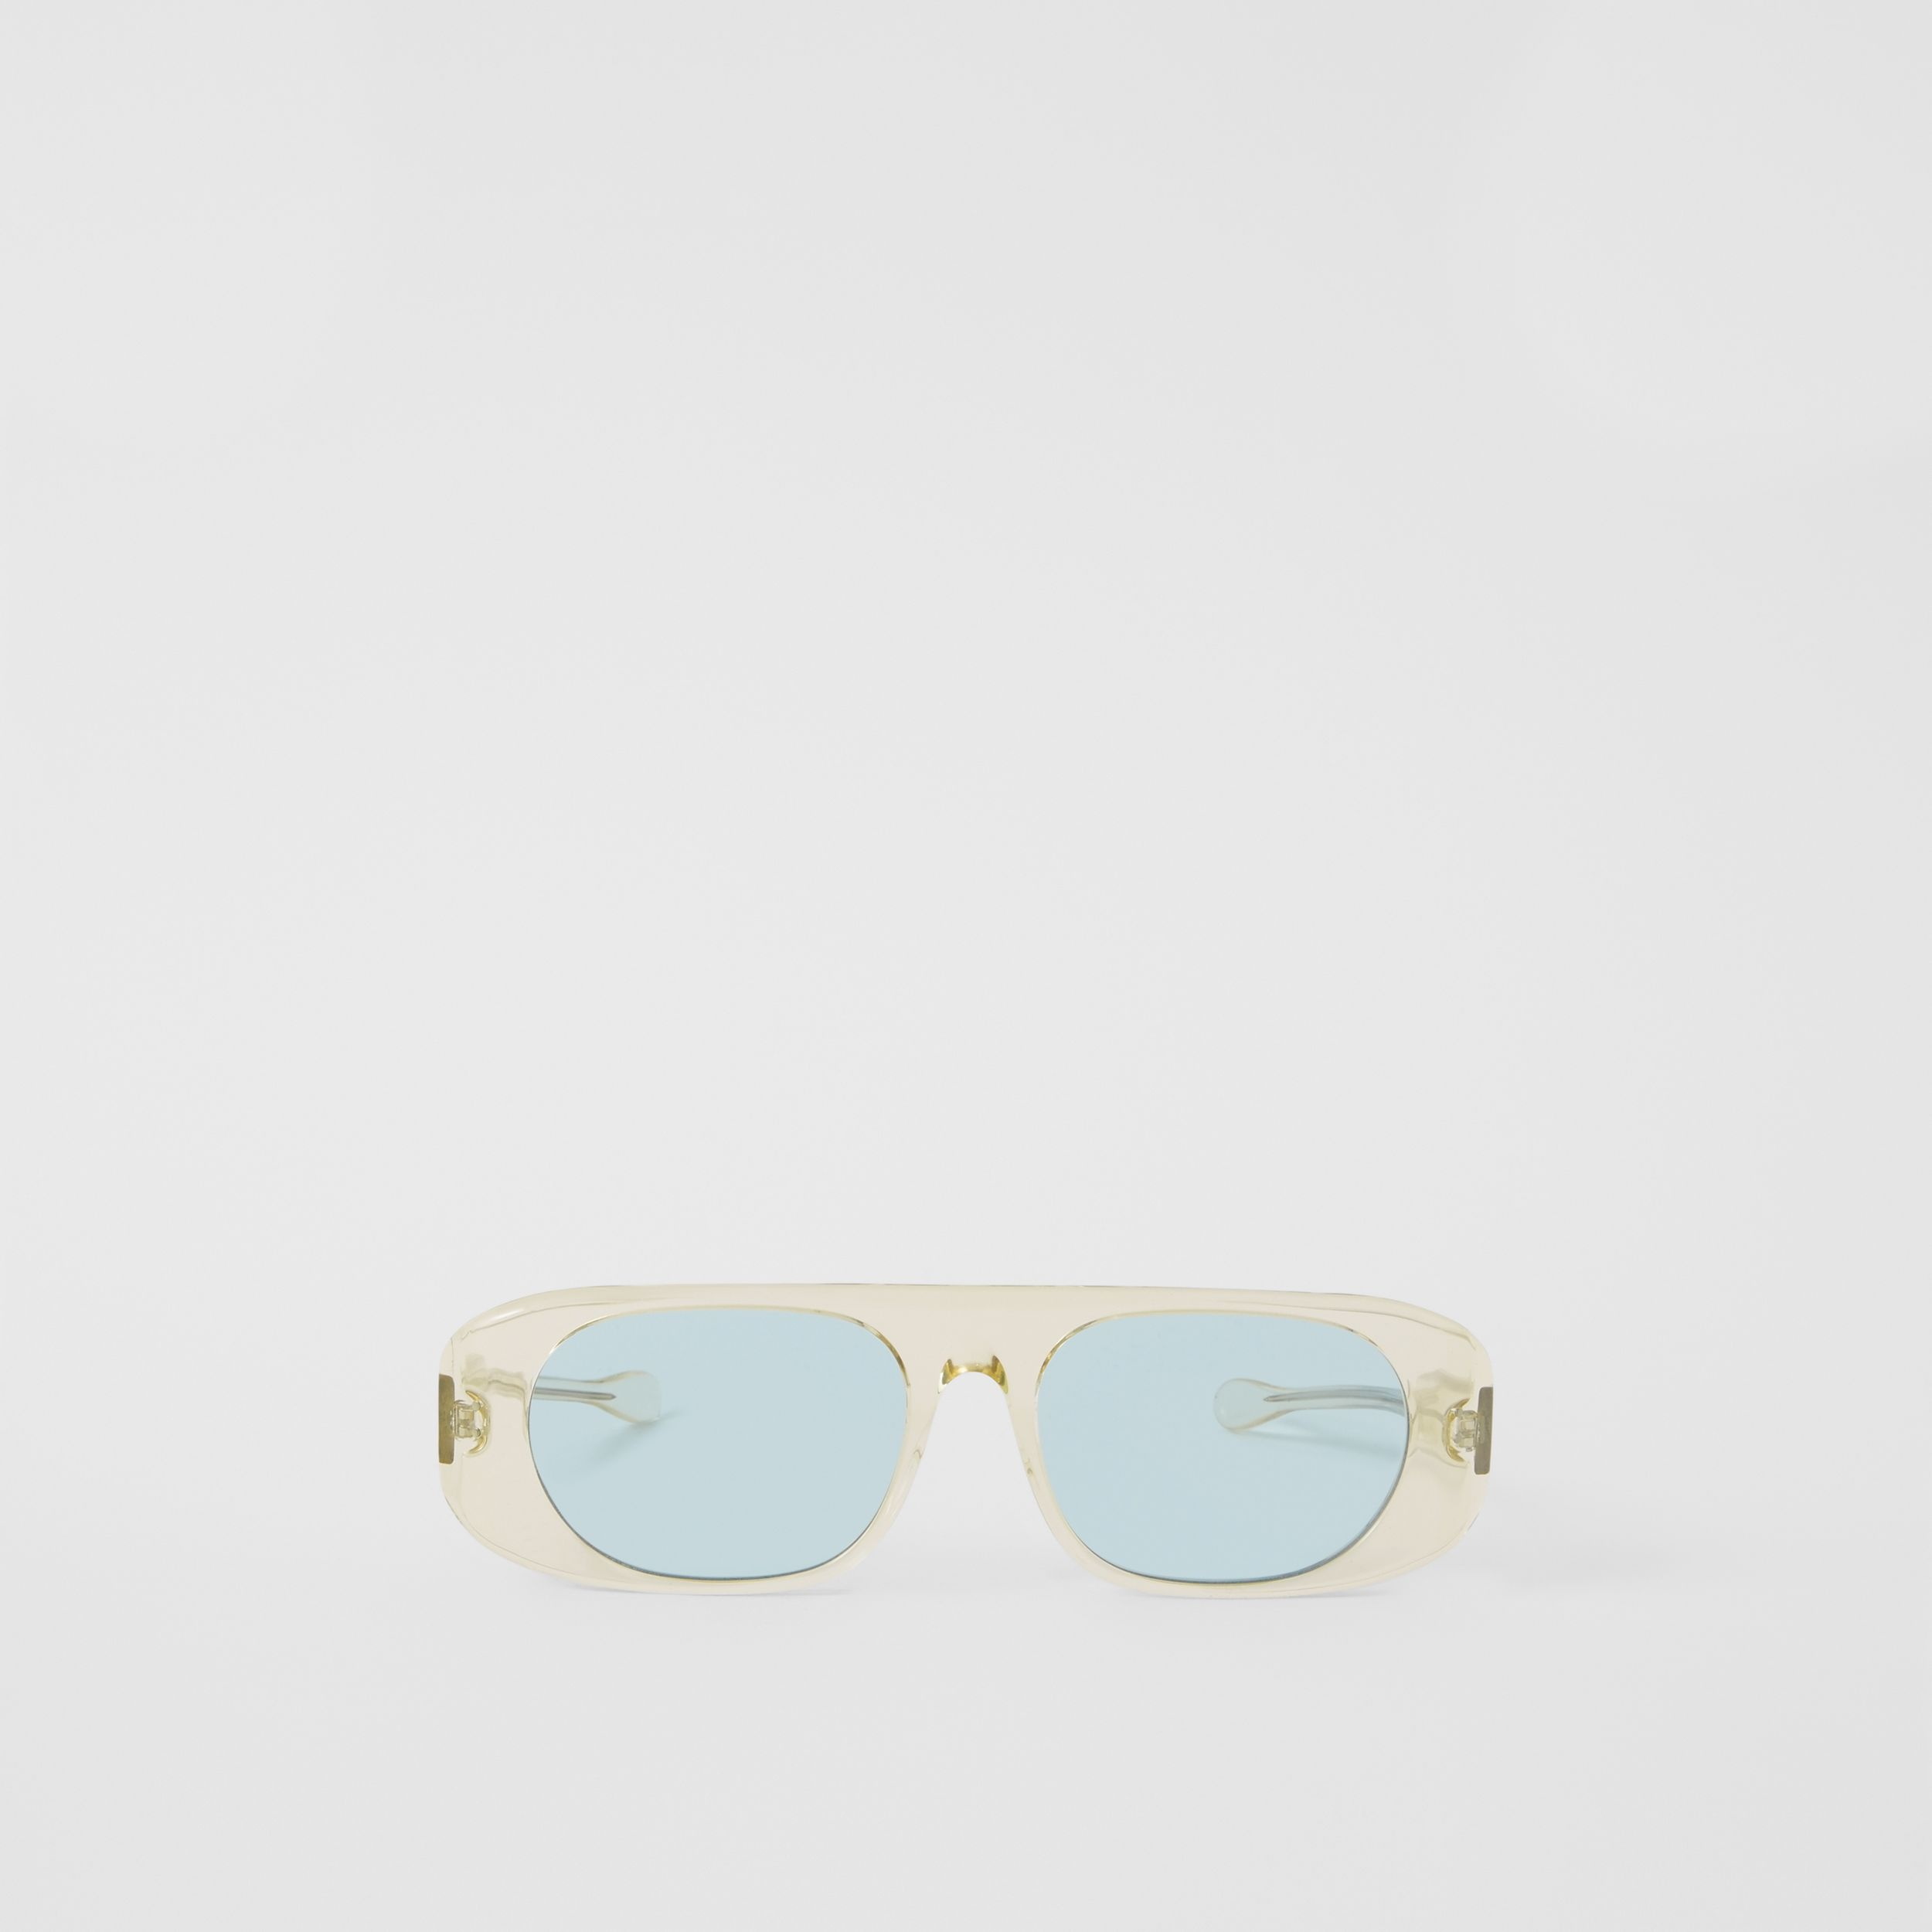 Blake Sunglasses in Transparent Champagne | Burberry United States - 1